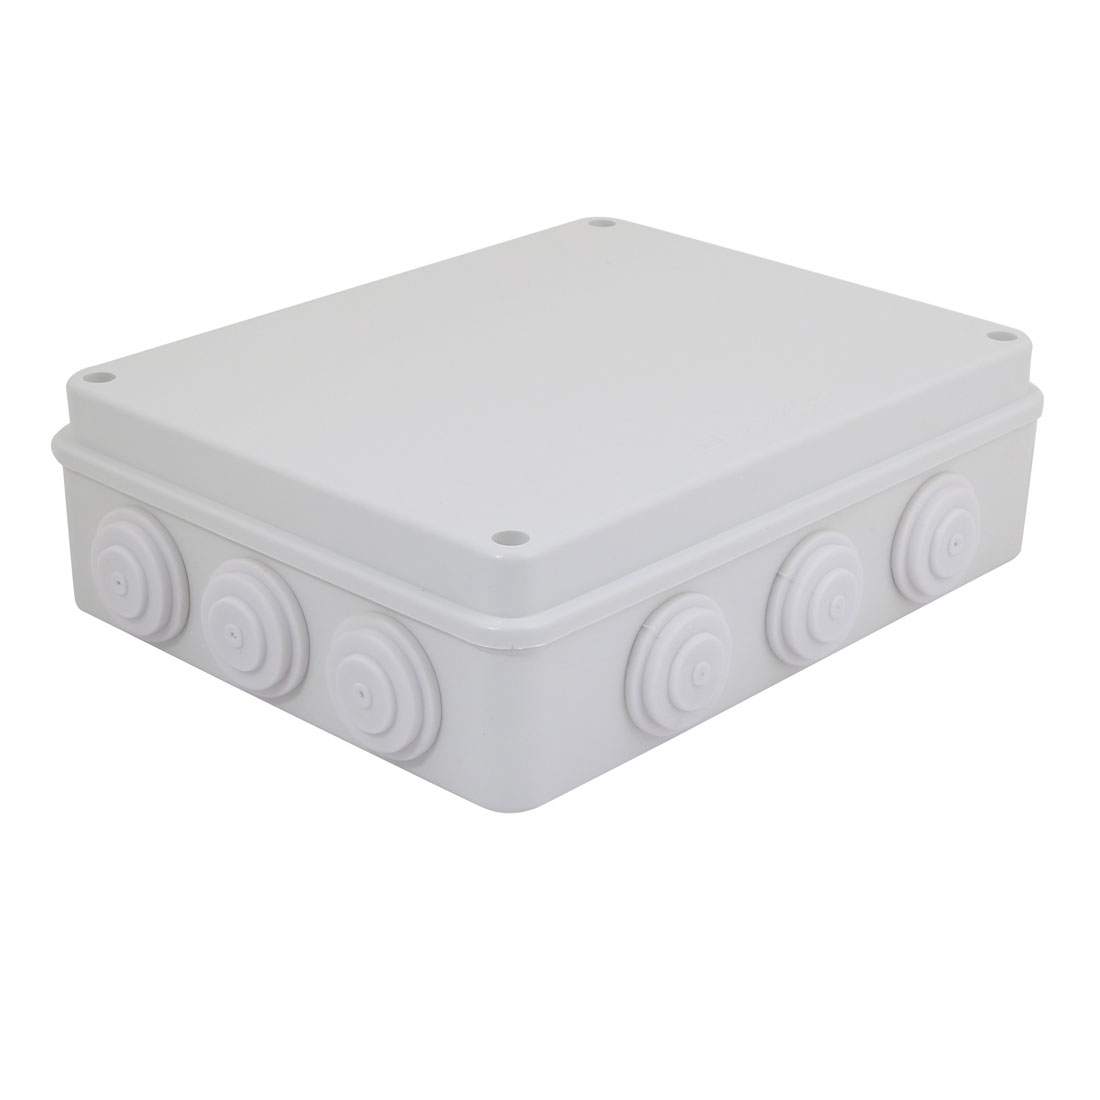 255mmx200mmx80mm Electronic ABS Plastic DIY Junction Box Enclosure Case Gray